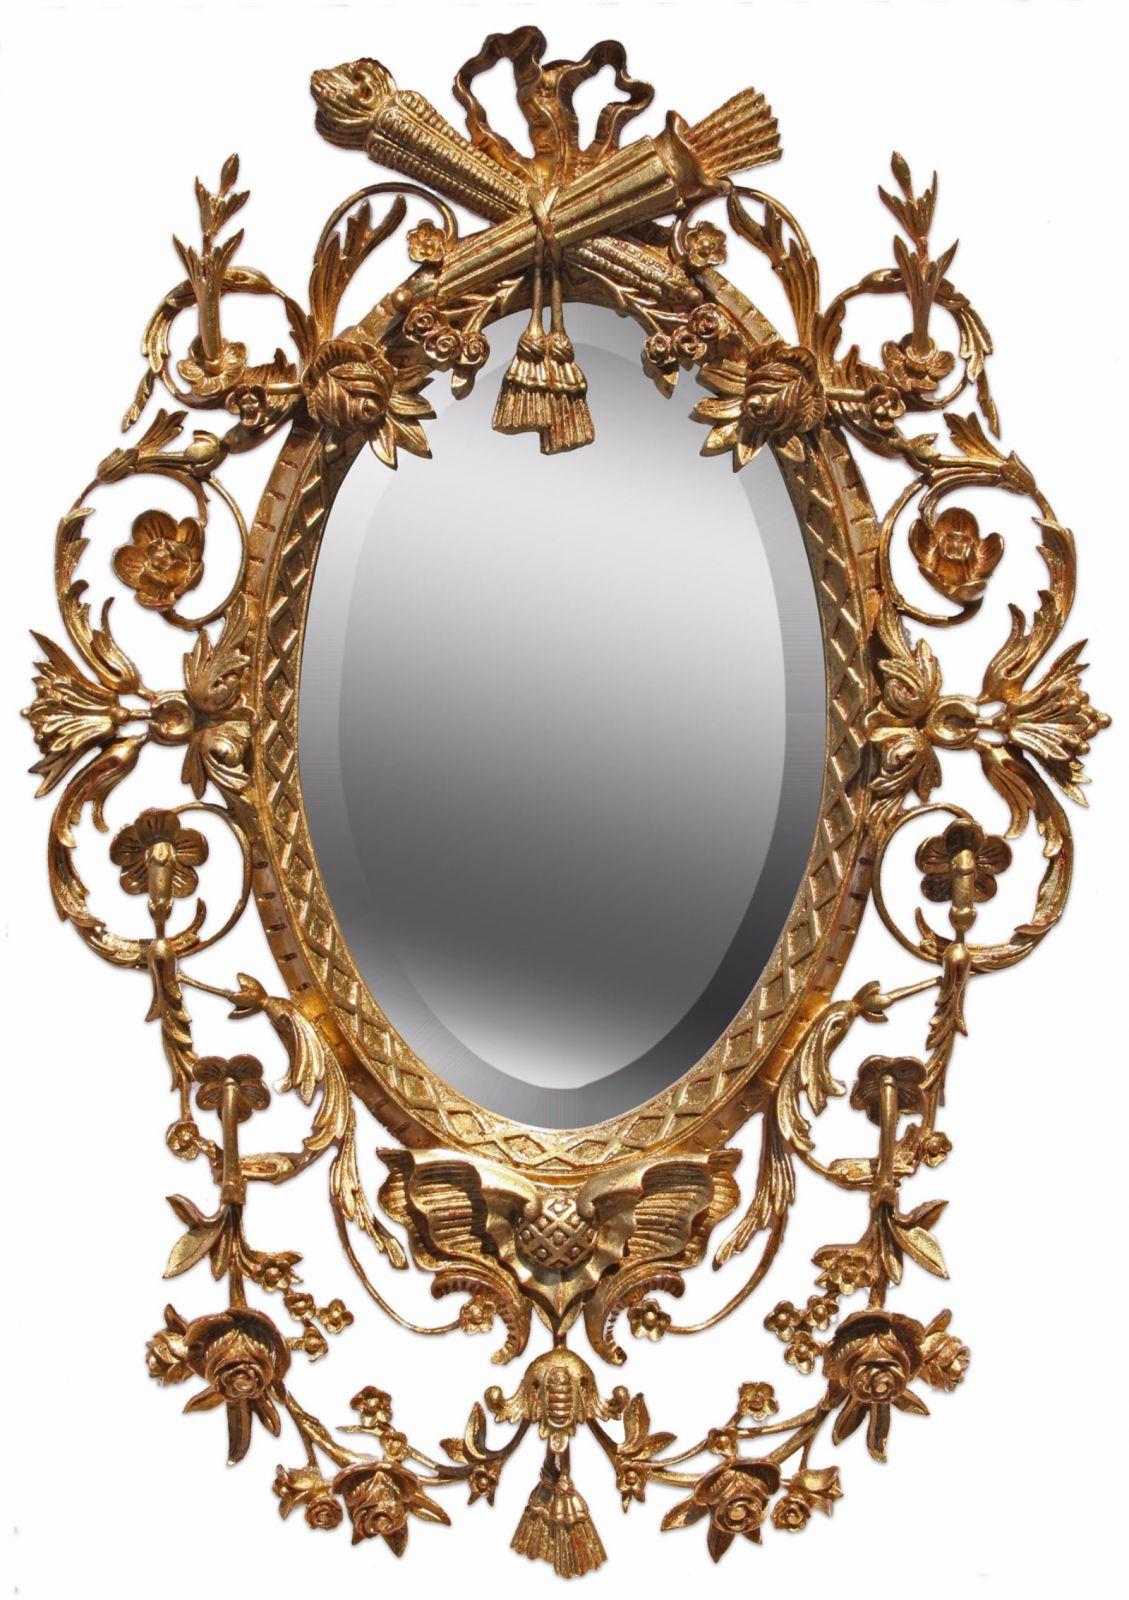 Louis XVI style mirror - Antique finish, Wall mirrors from ...